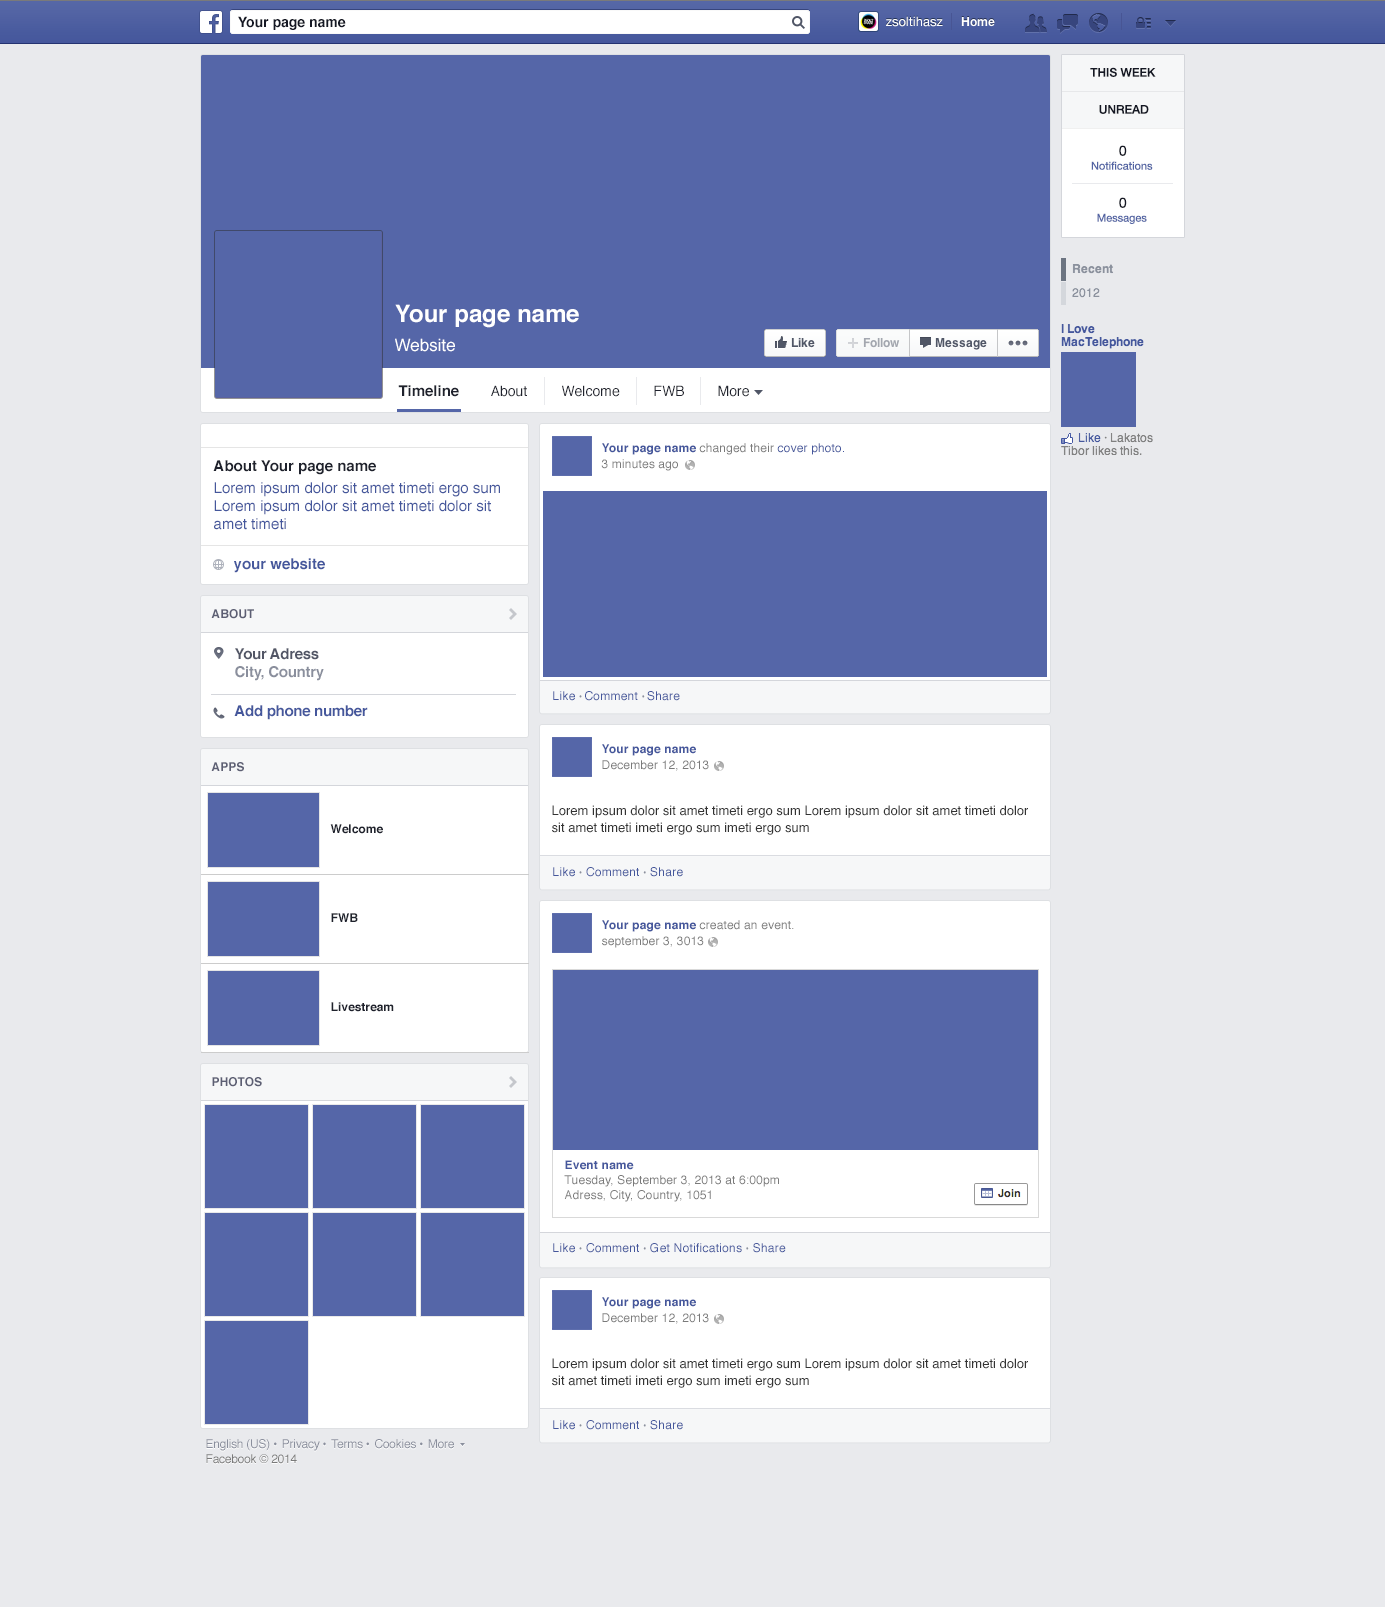 Facebook Page Redesign 2014 Mockup Psd Download Download Psd